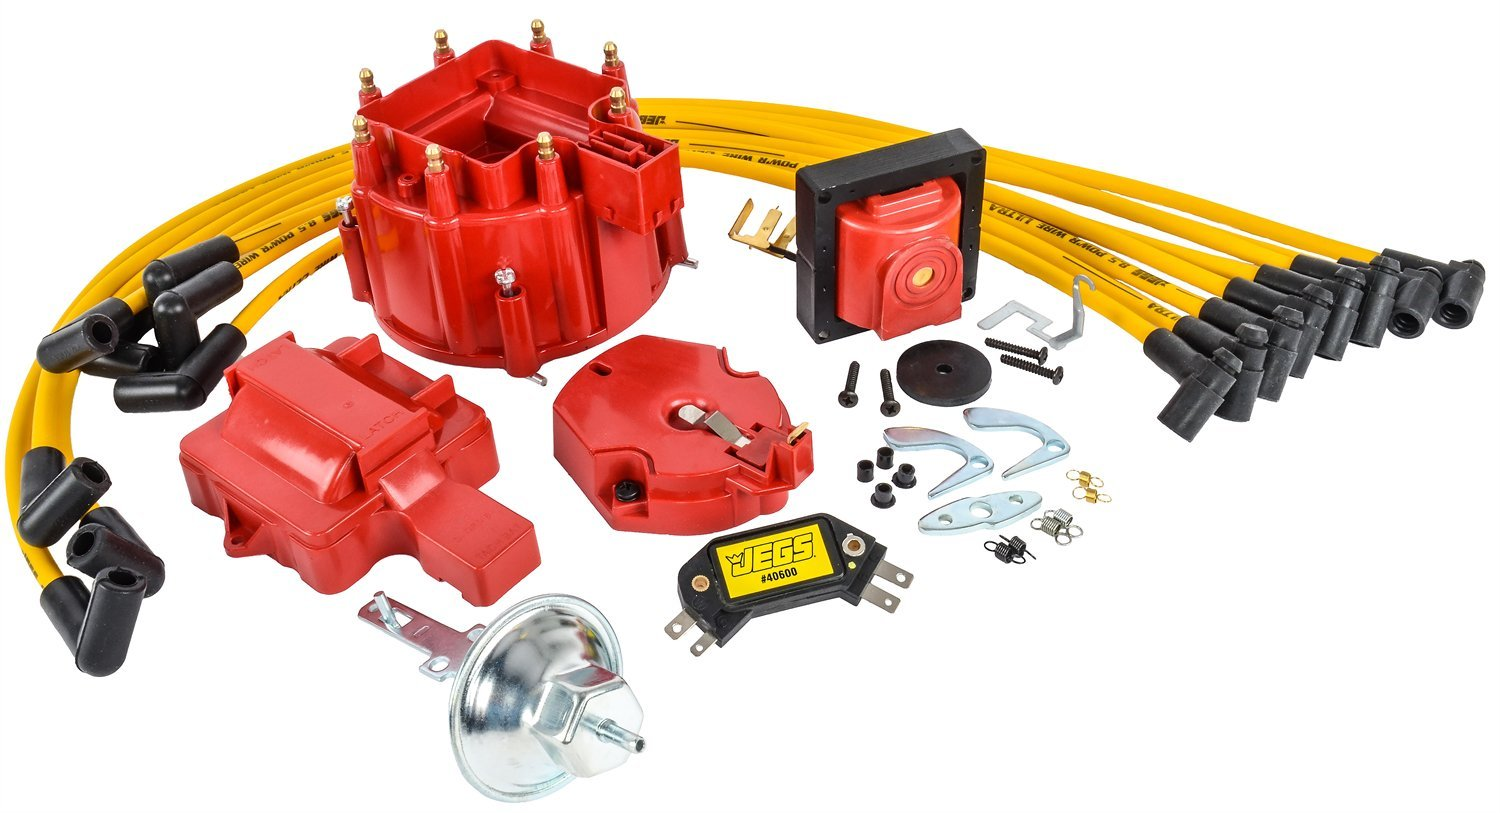 JEGS 40009K1 High-Performance HEI Ignition Tune-Up Kit by JEGS